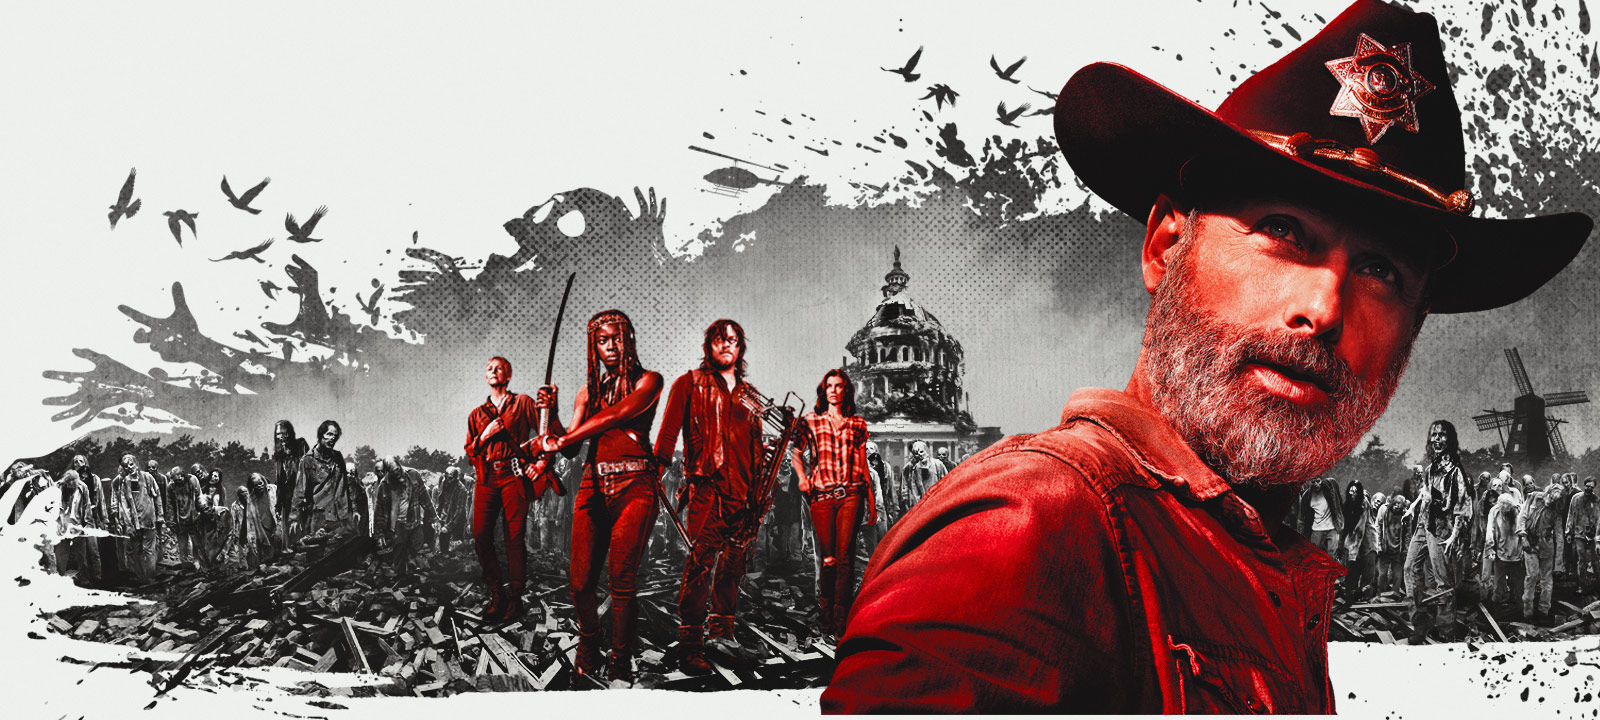 the-walking-dead-season-9-key-art-rick-lincoln-michonne-gurira-800×600